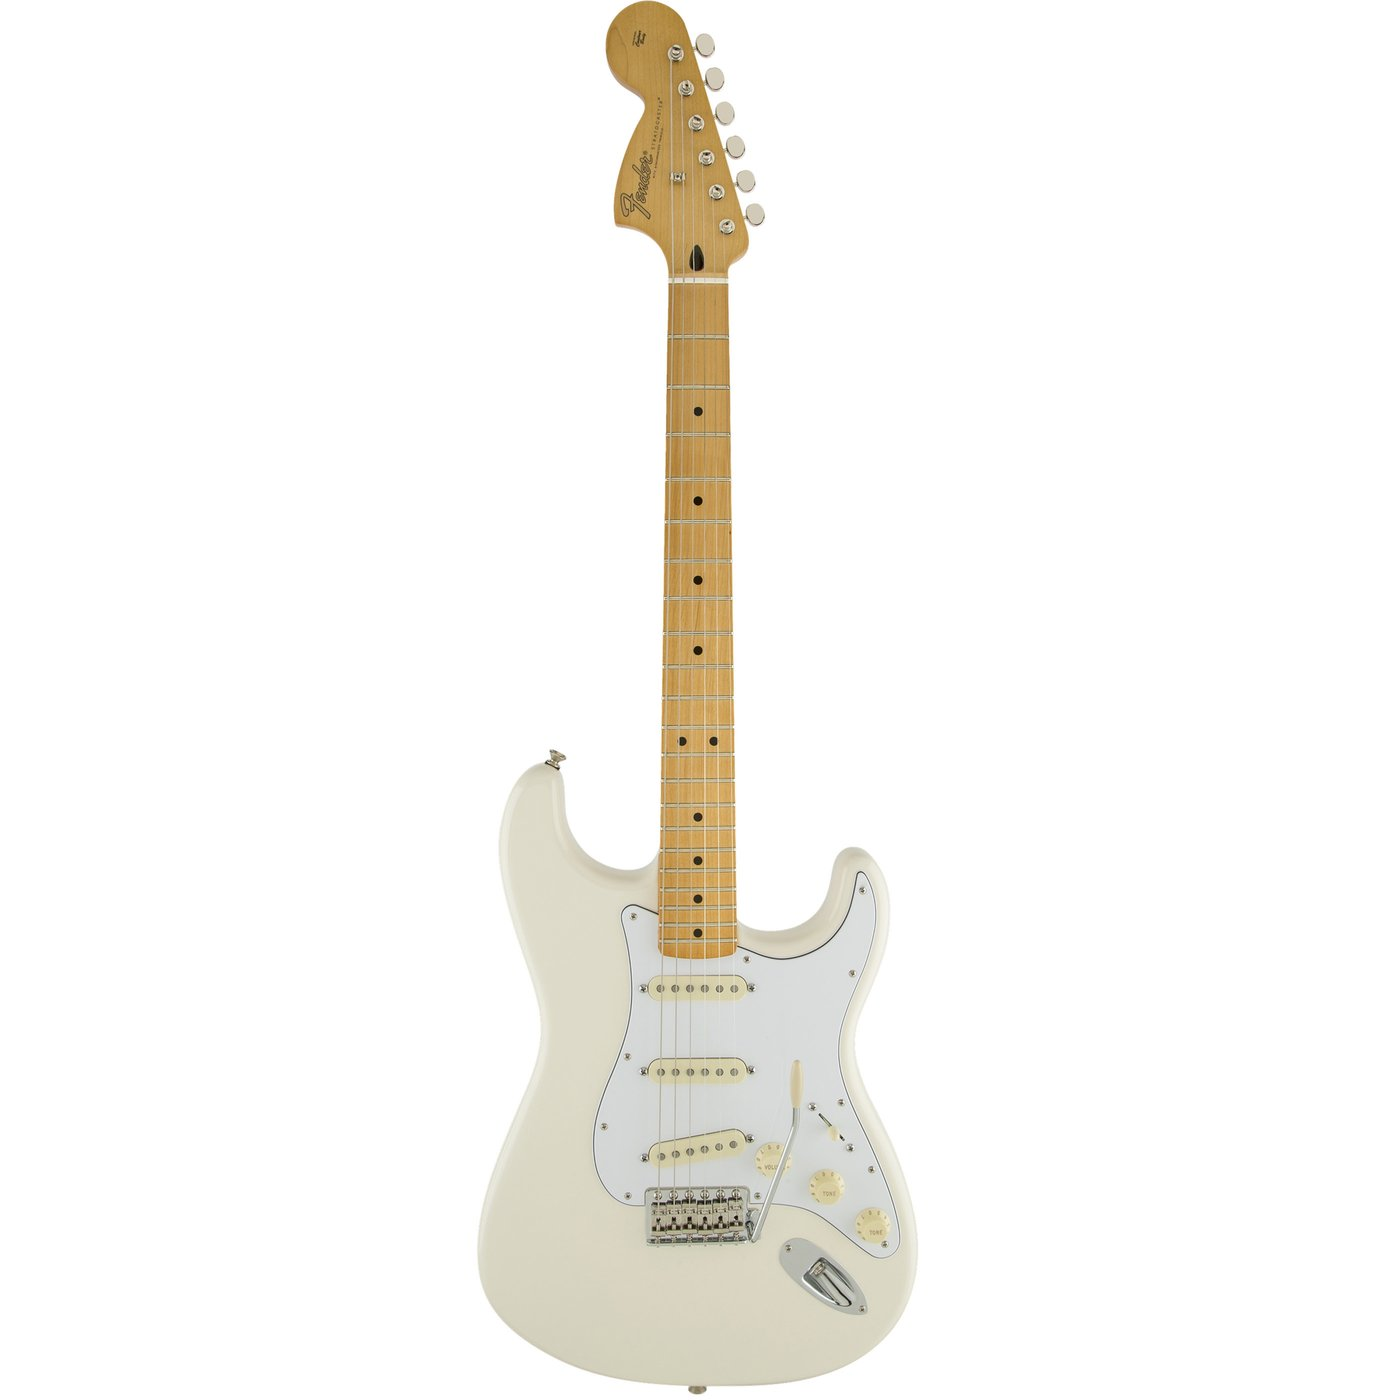 Fender Stratocaster Silhouette At Getdrawings Com Free